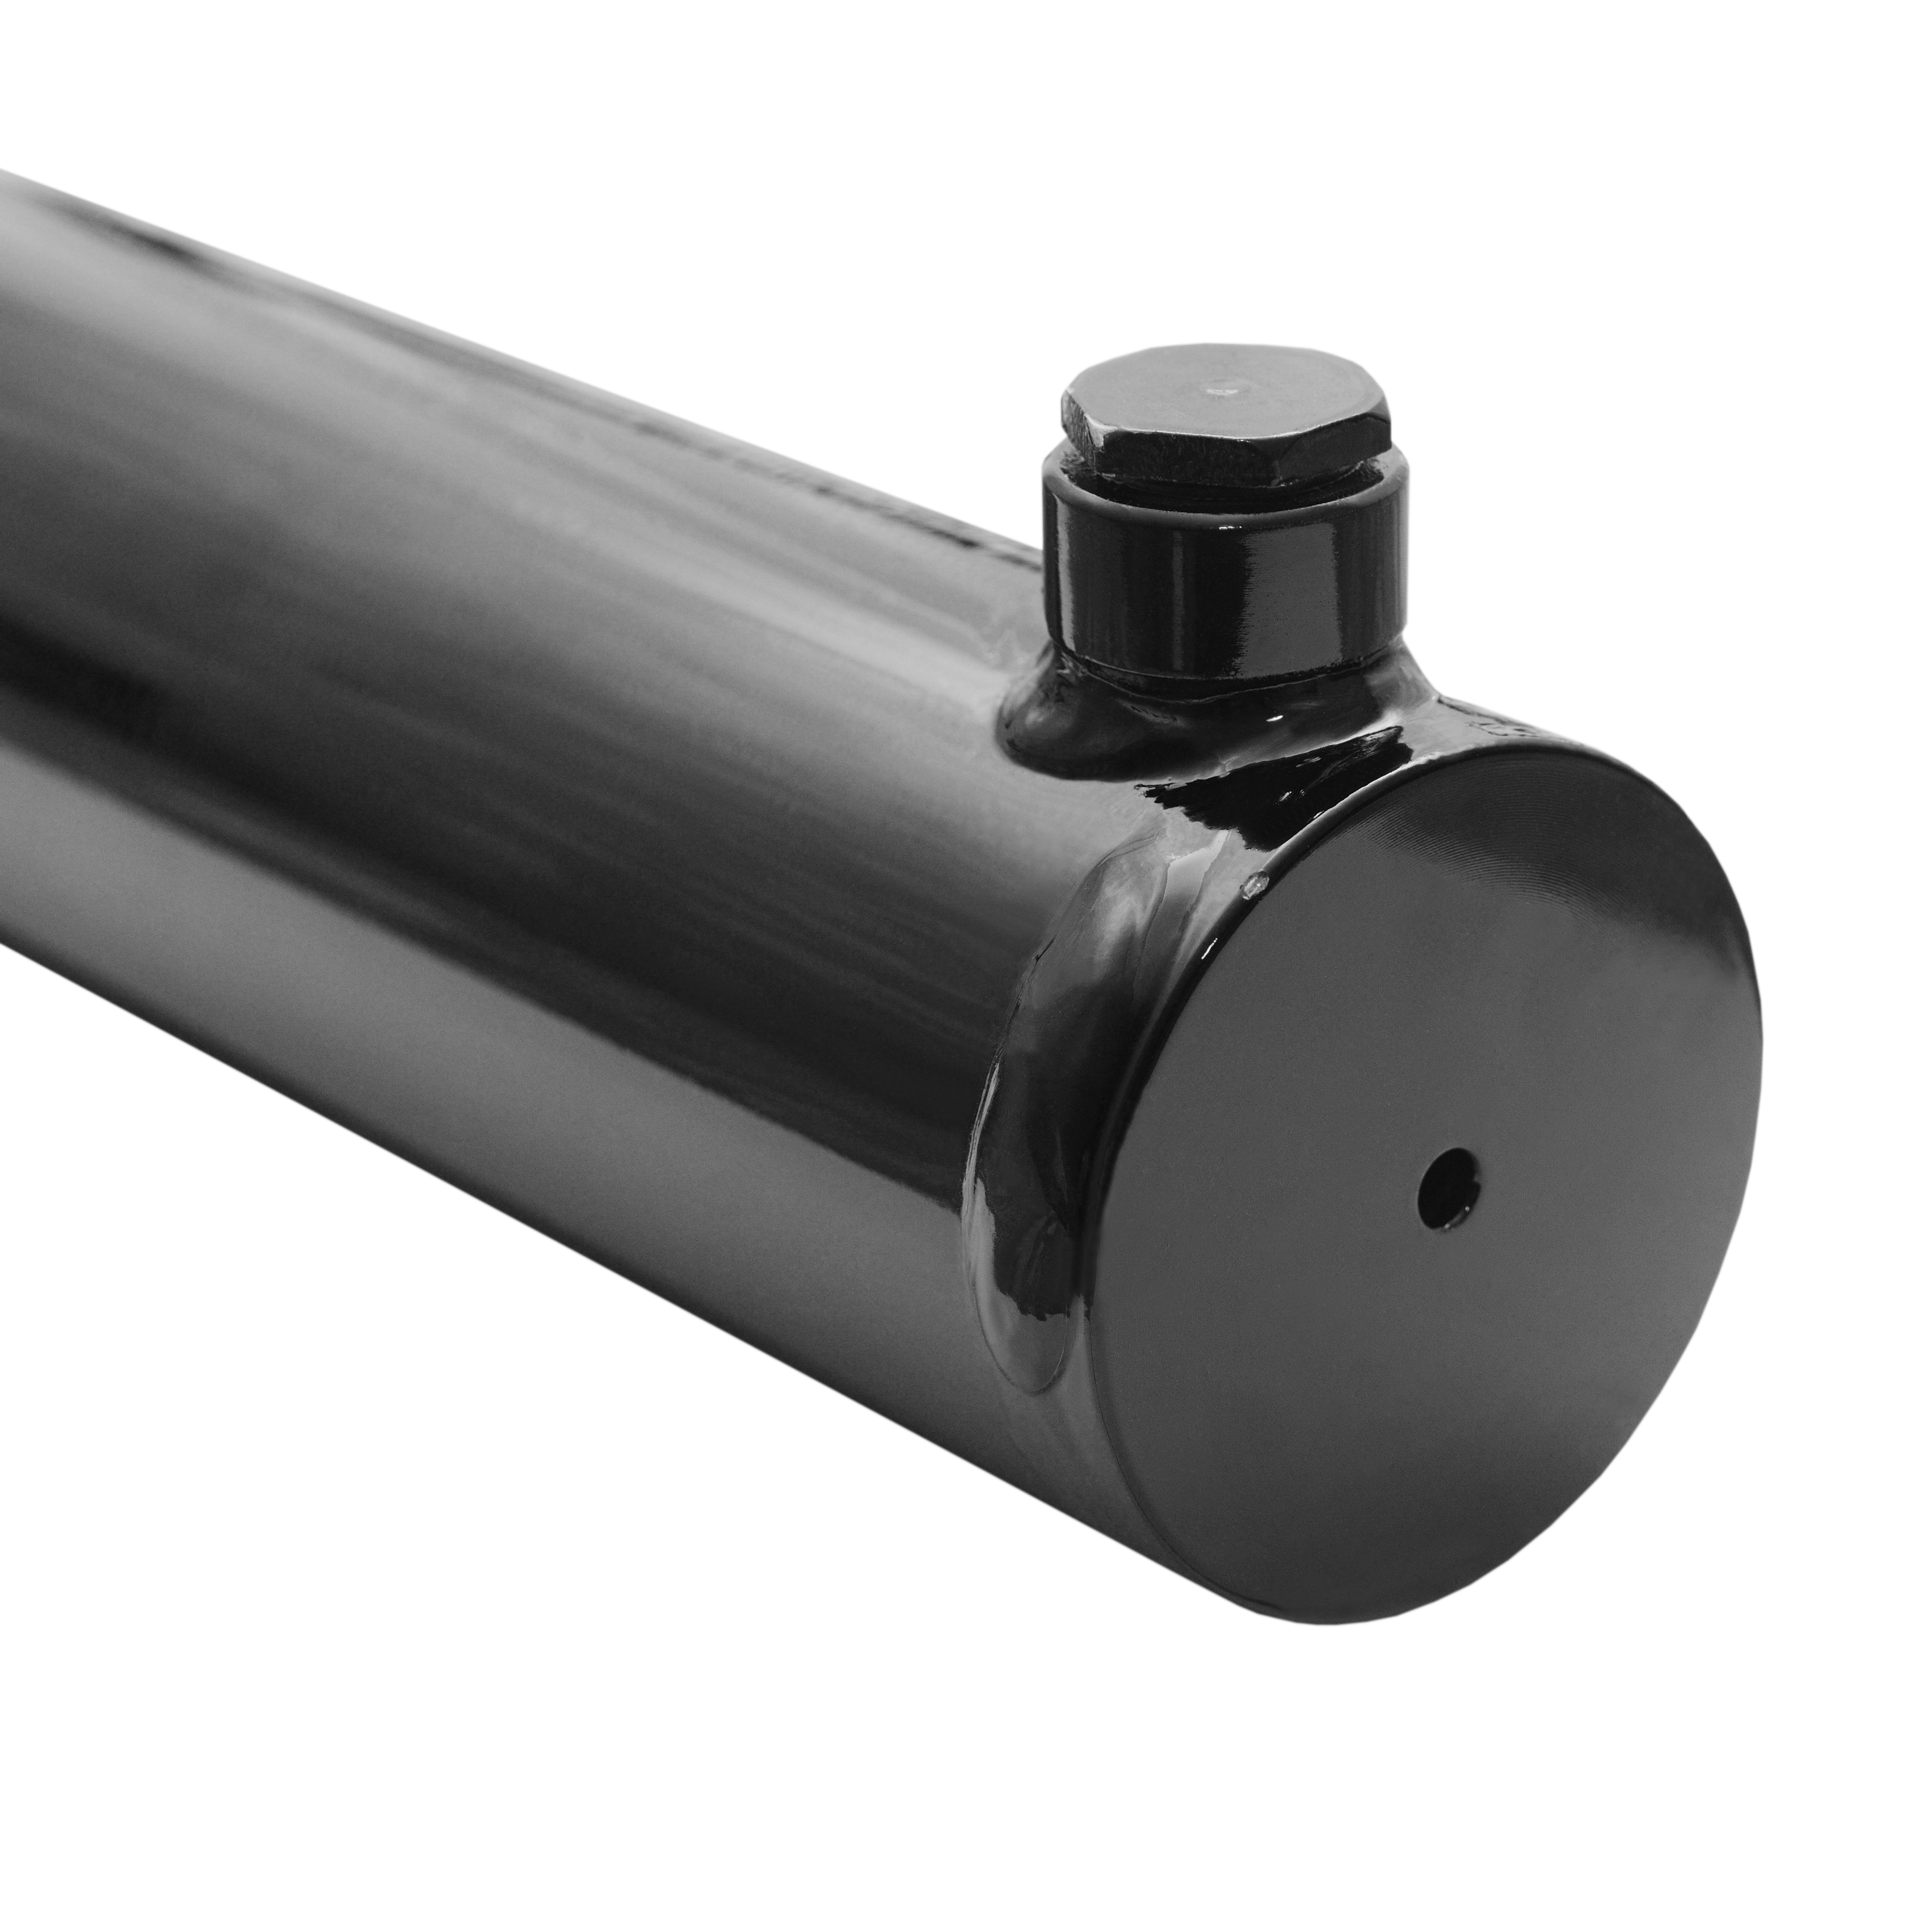 2 bore x 10 stroke hydraulic cylinder, welded universal double acting cylinder | Magister Hydraulics